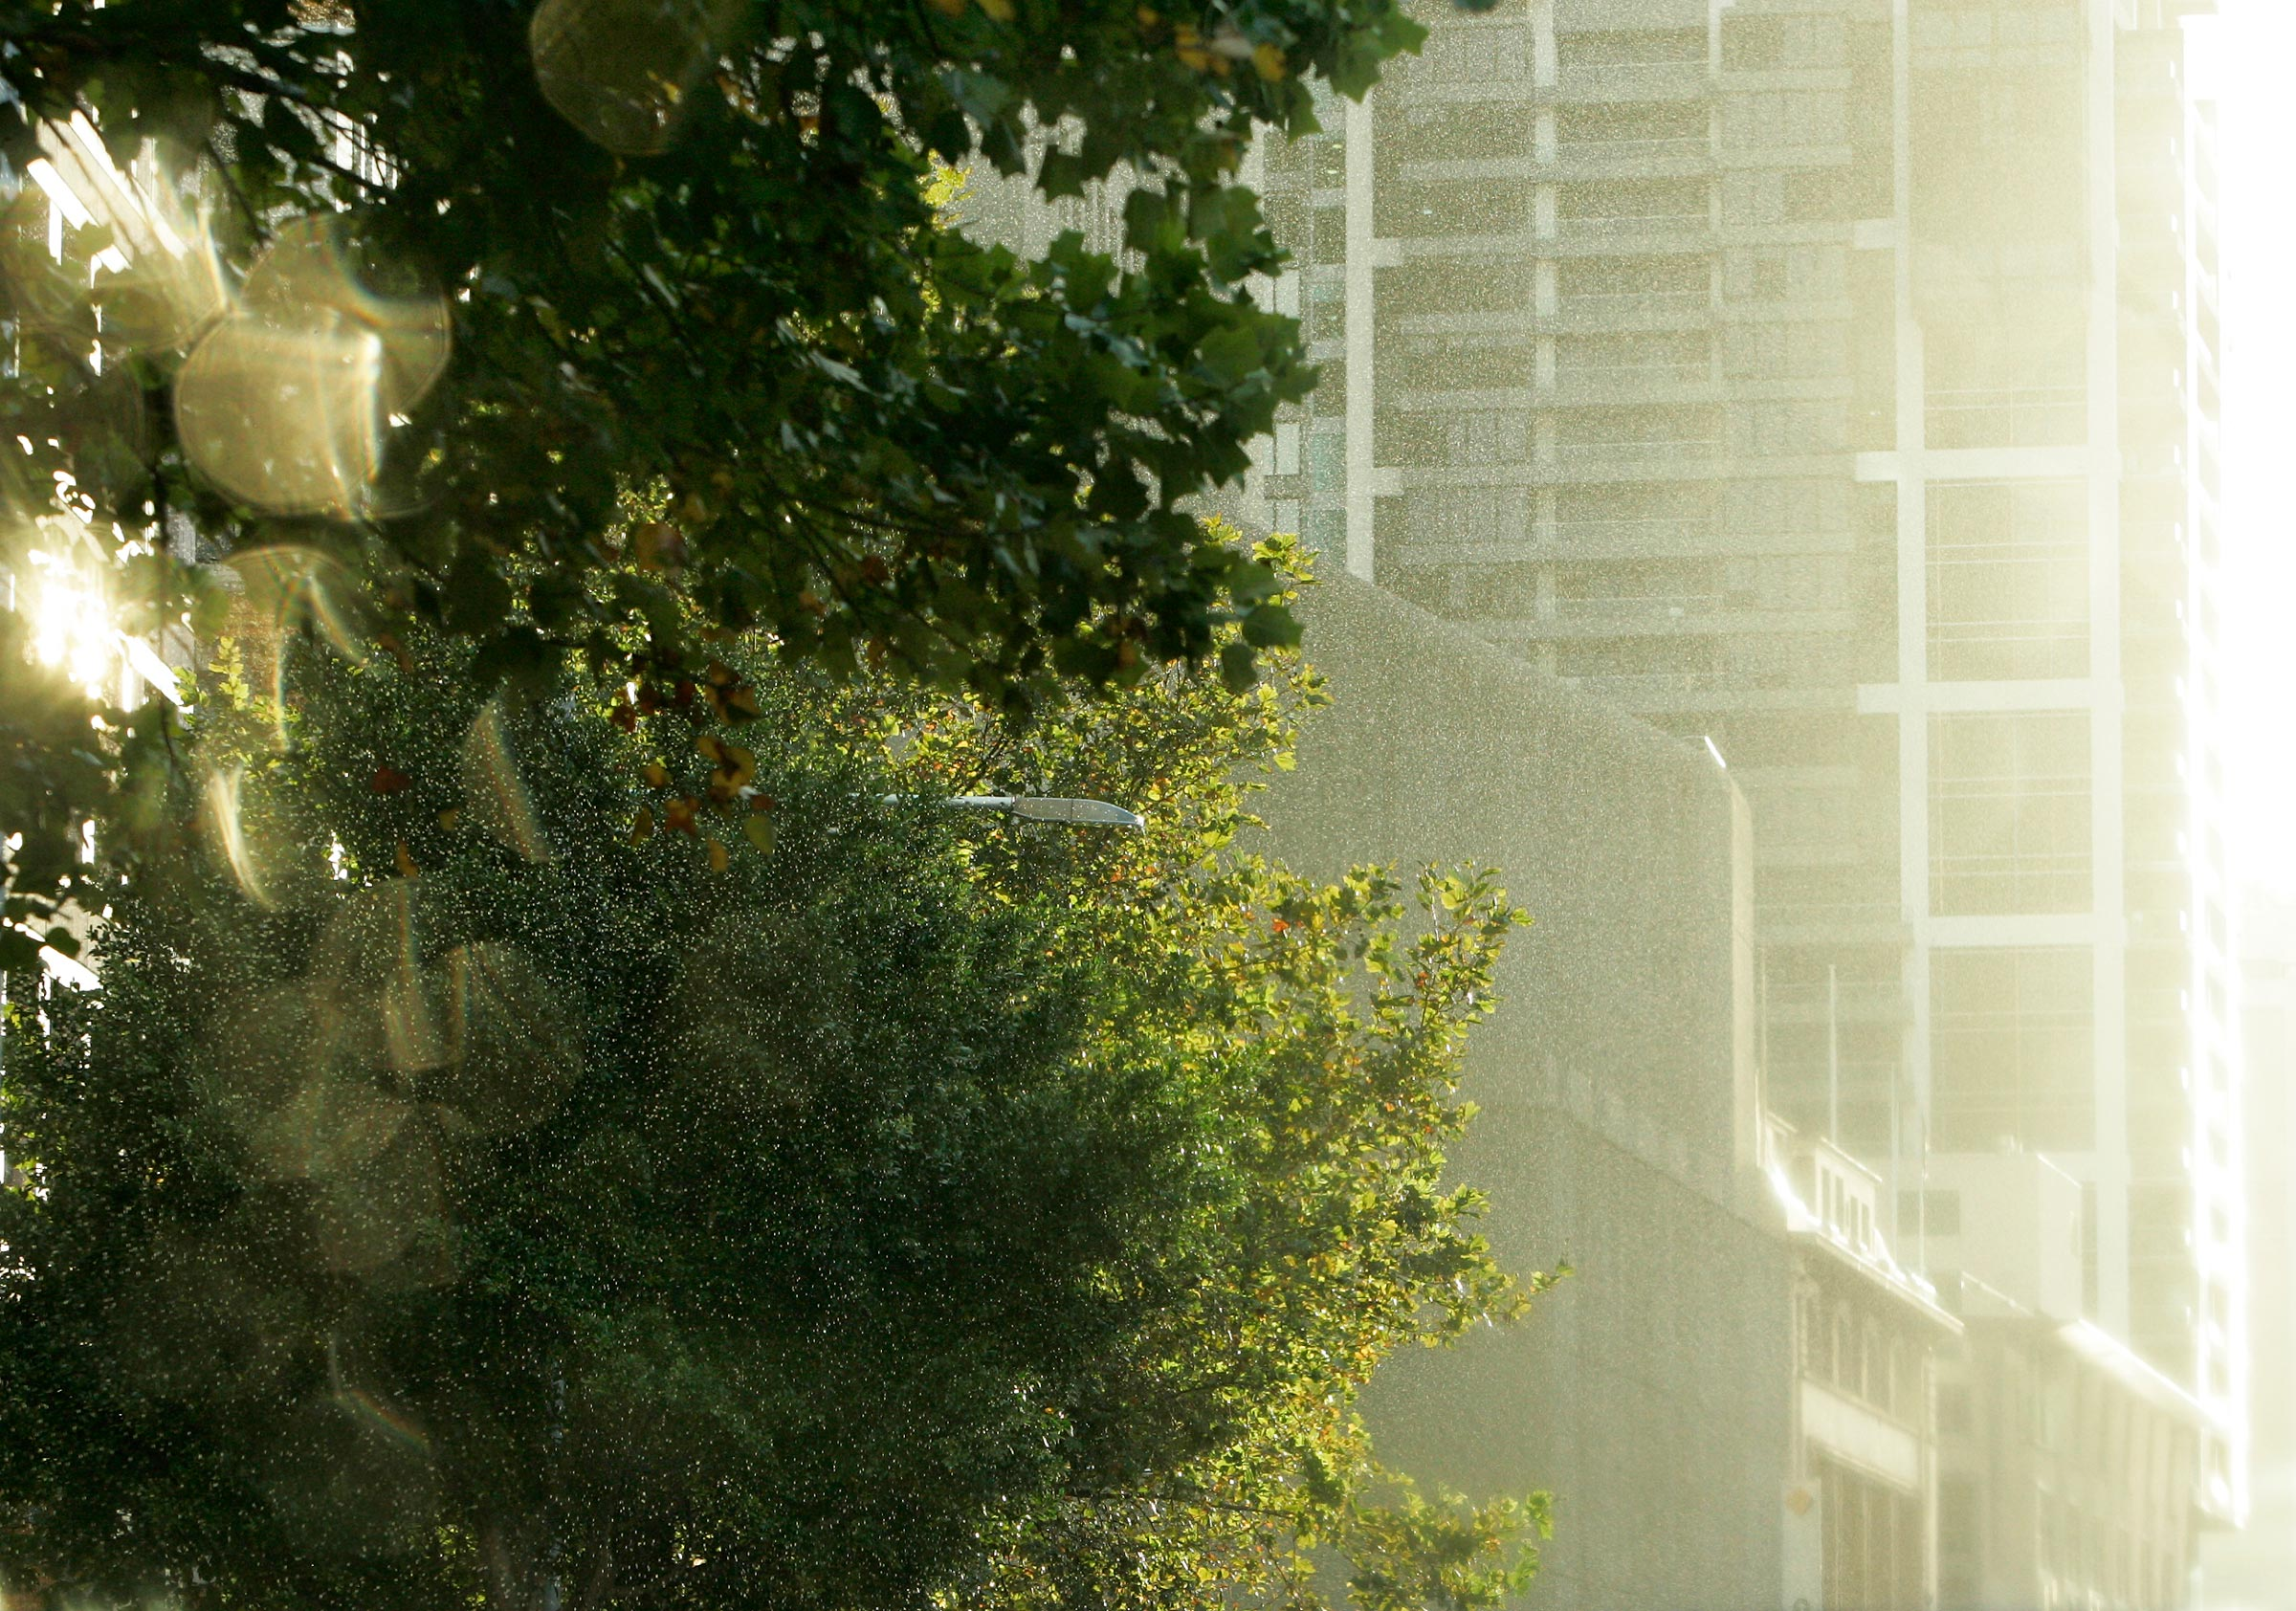 sun shower in the city